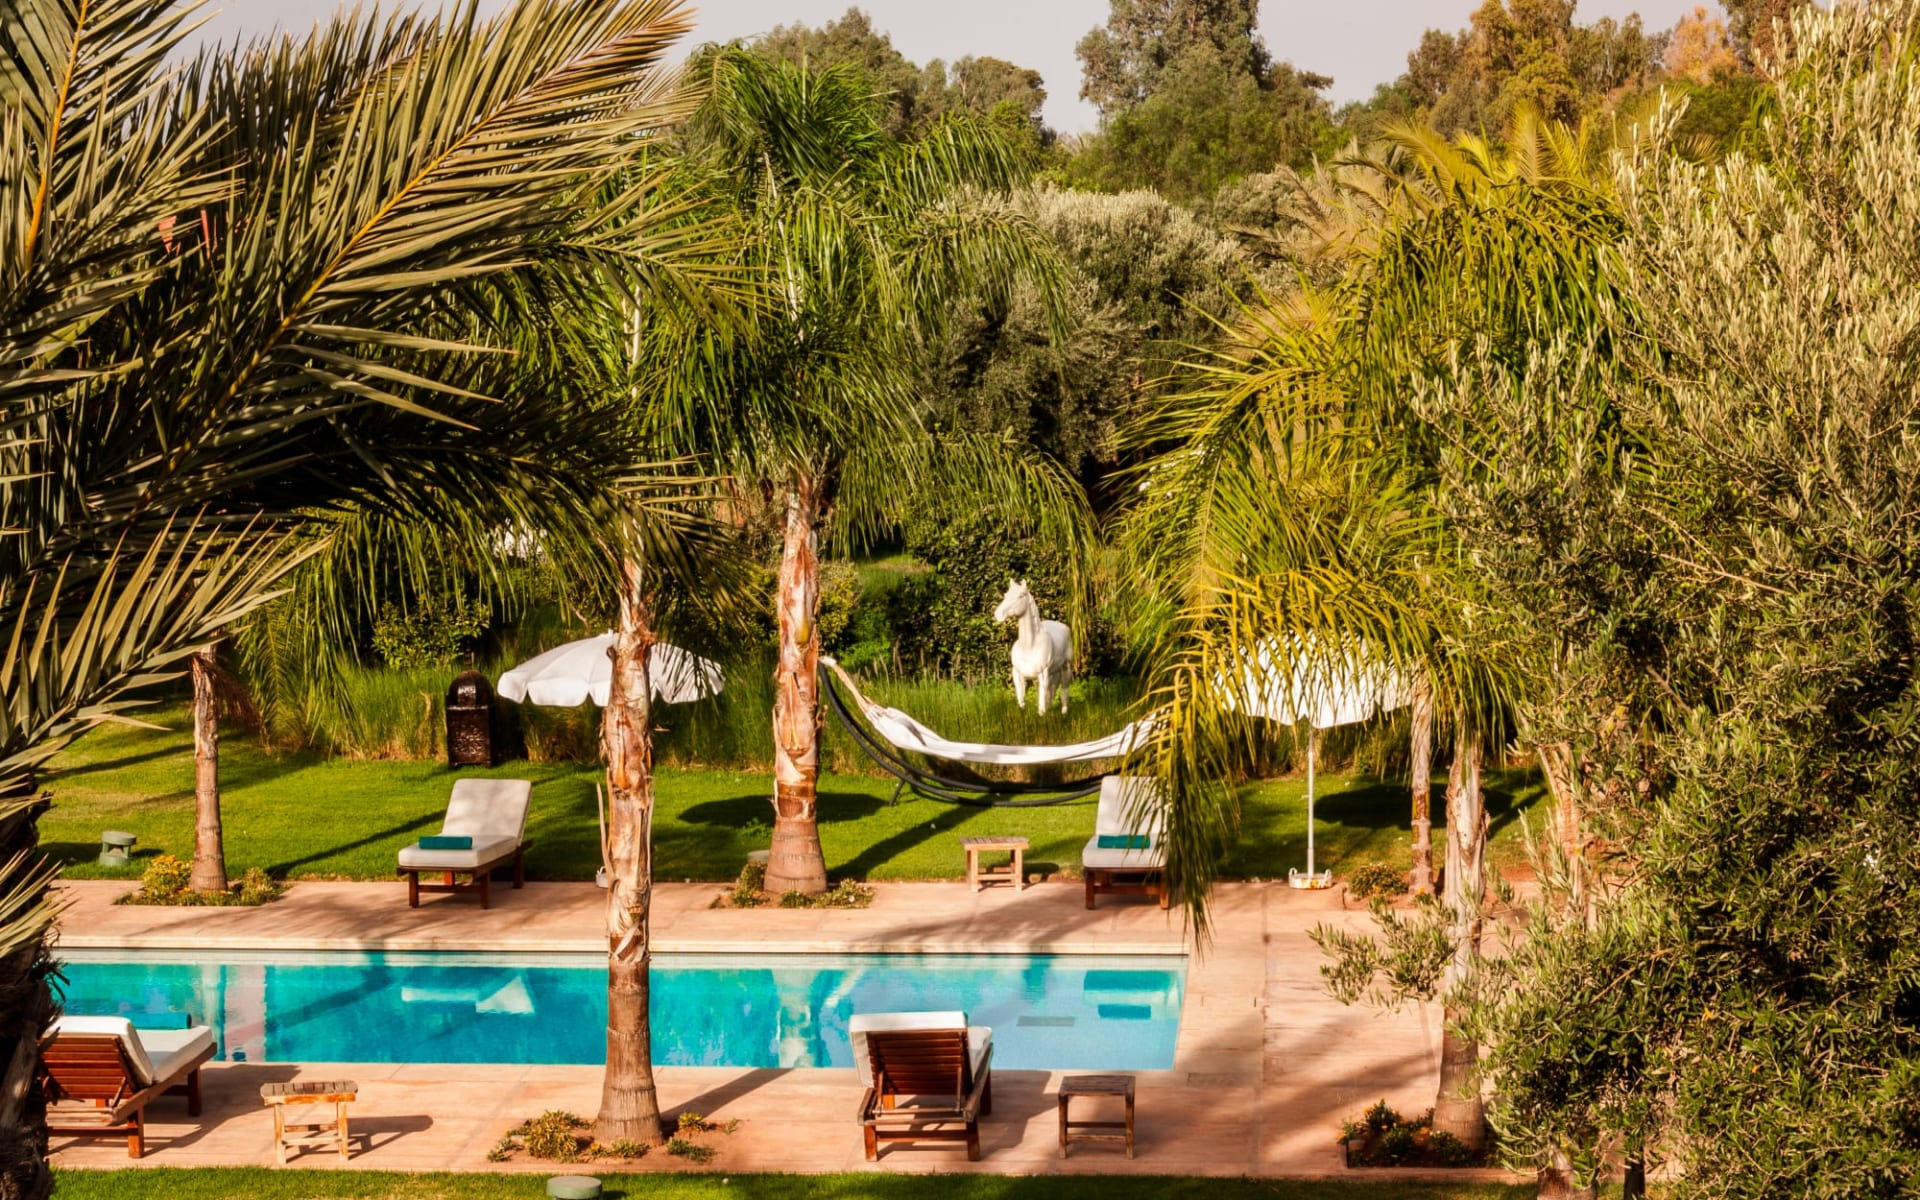 Villa Jardin Nomade in Marrakesch: